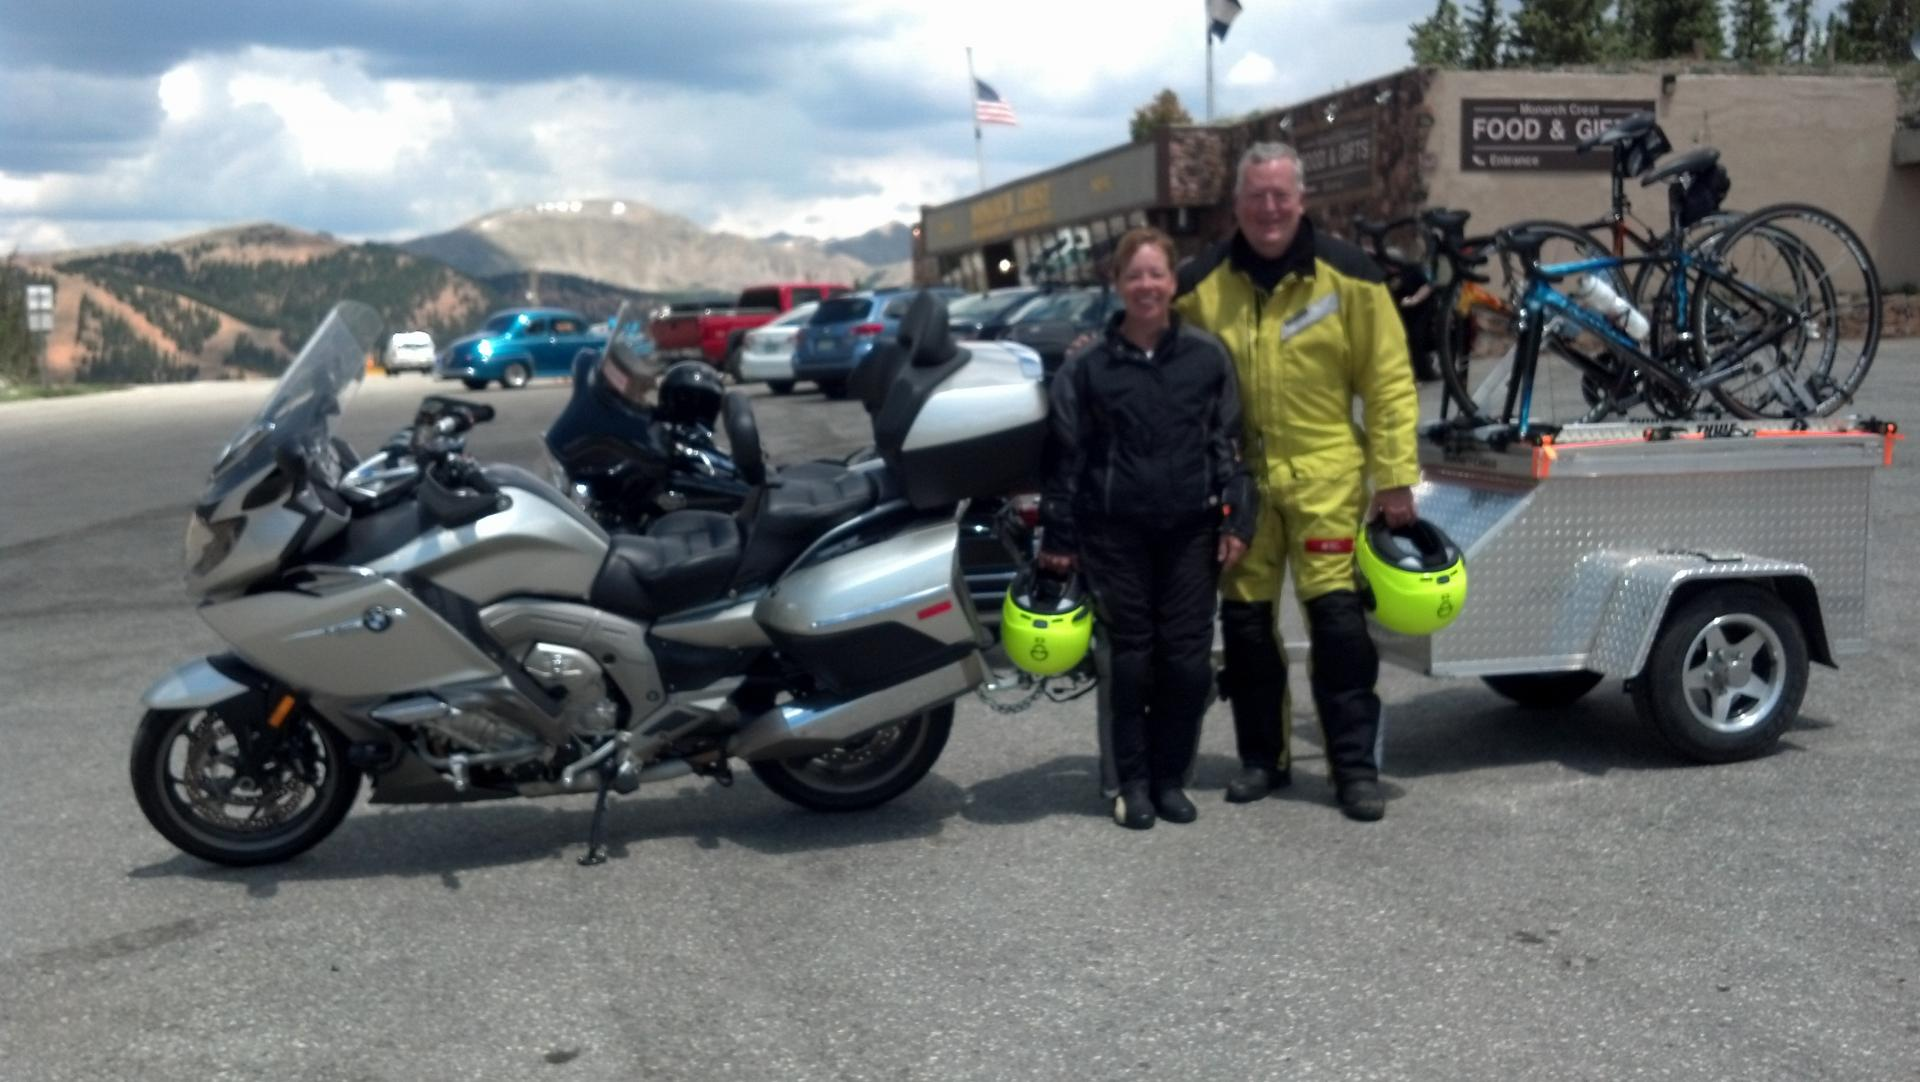 Towing a trailer questions - BMW K1600 Forum : BMW K1600 ...